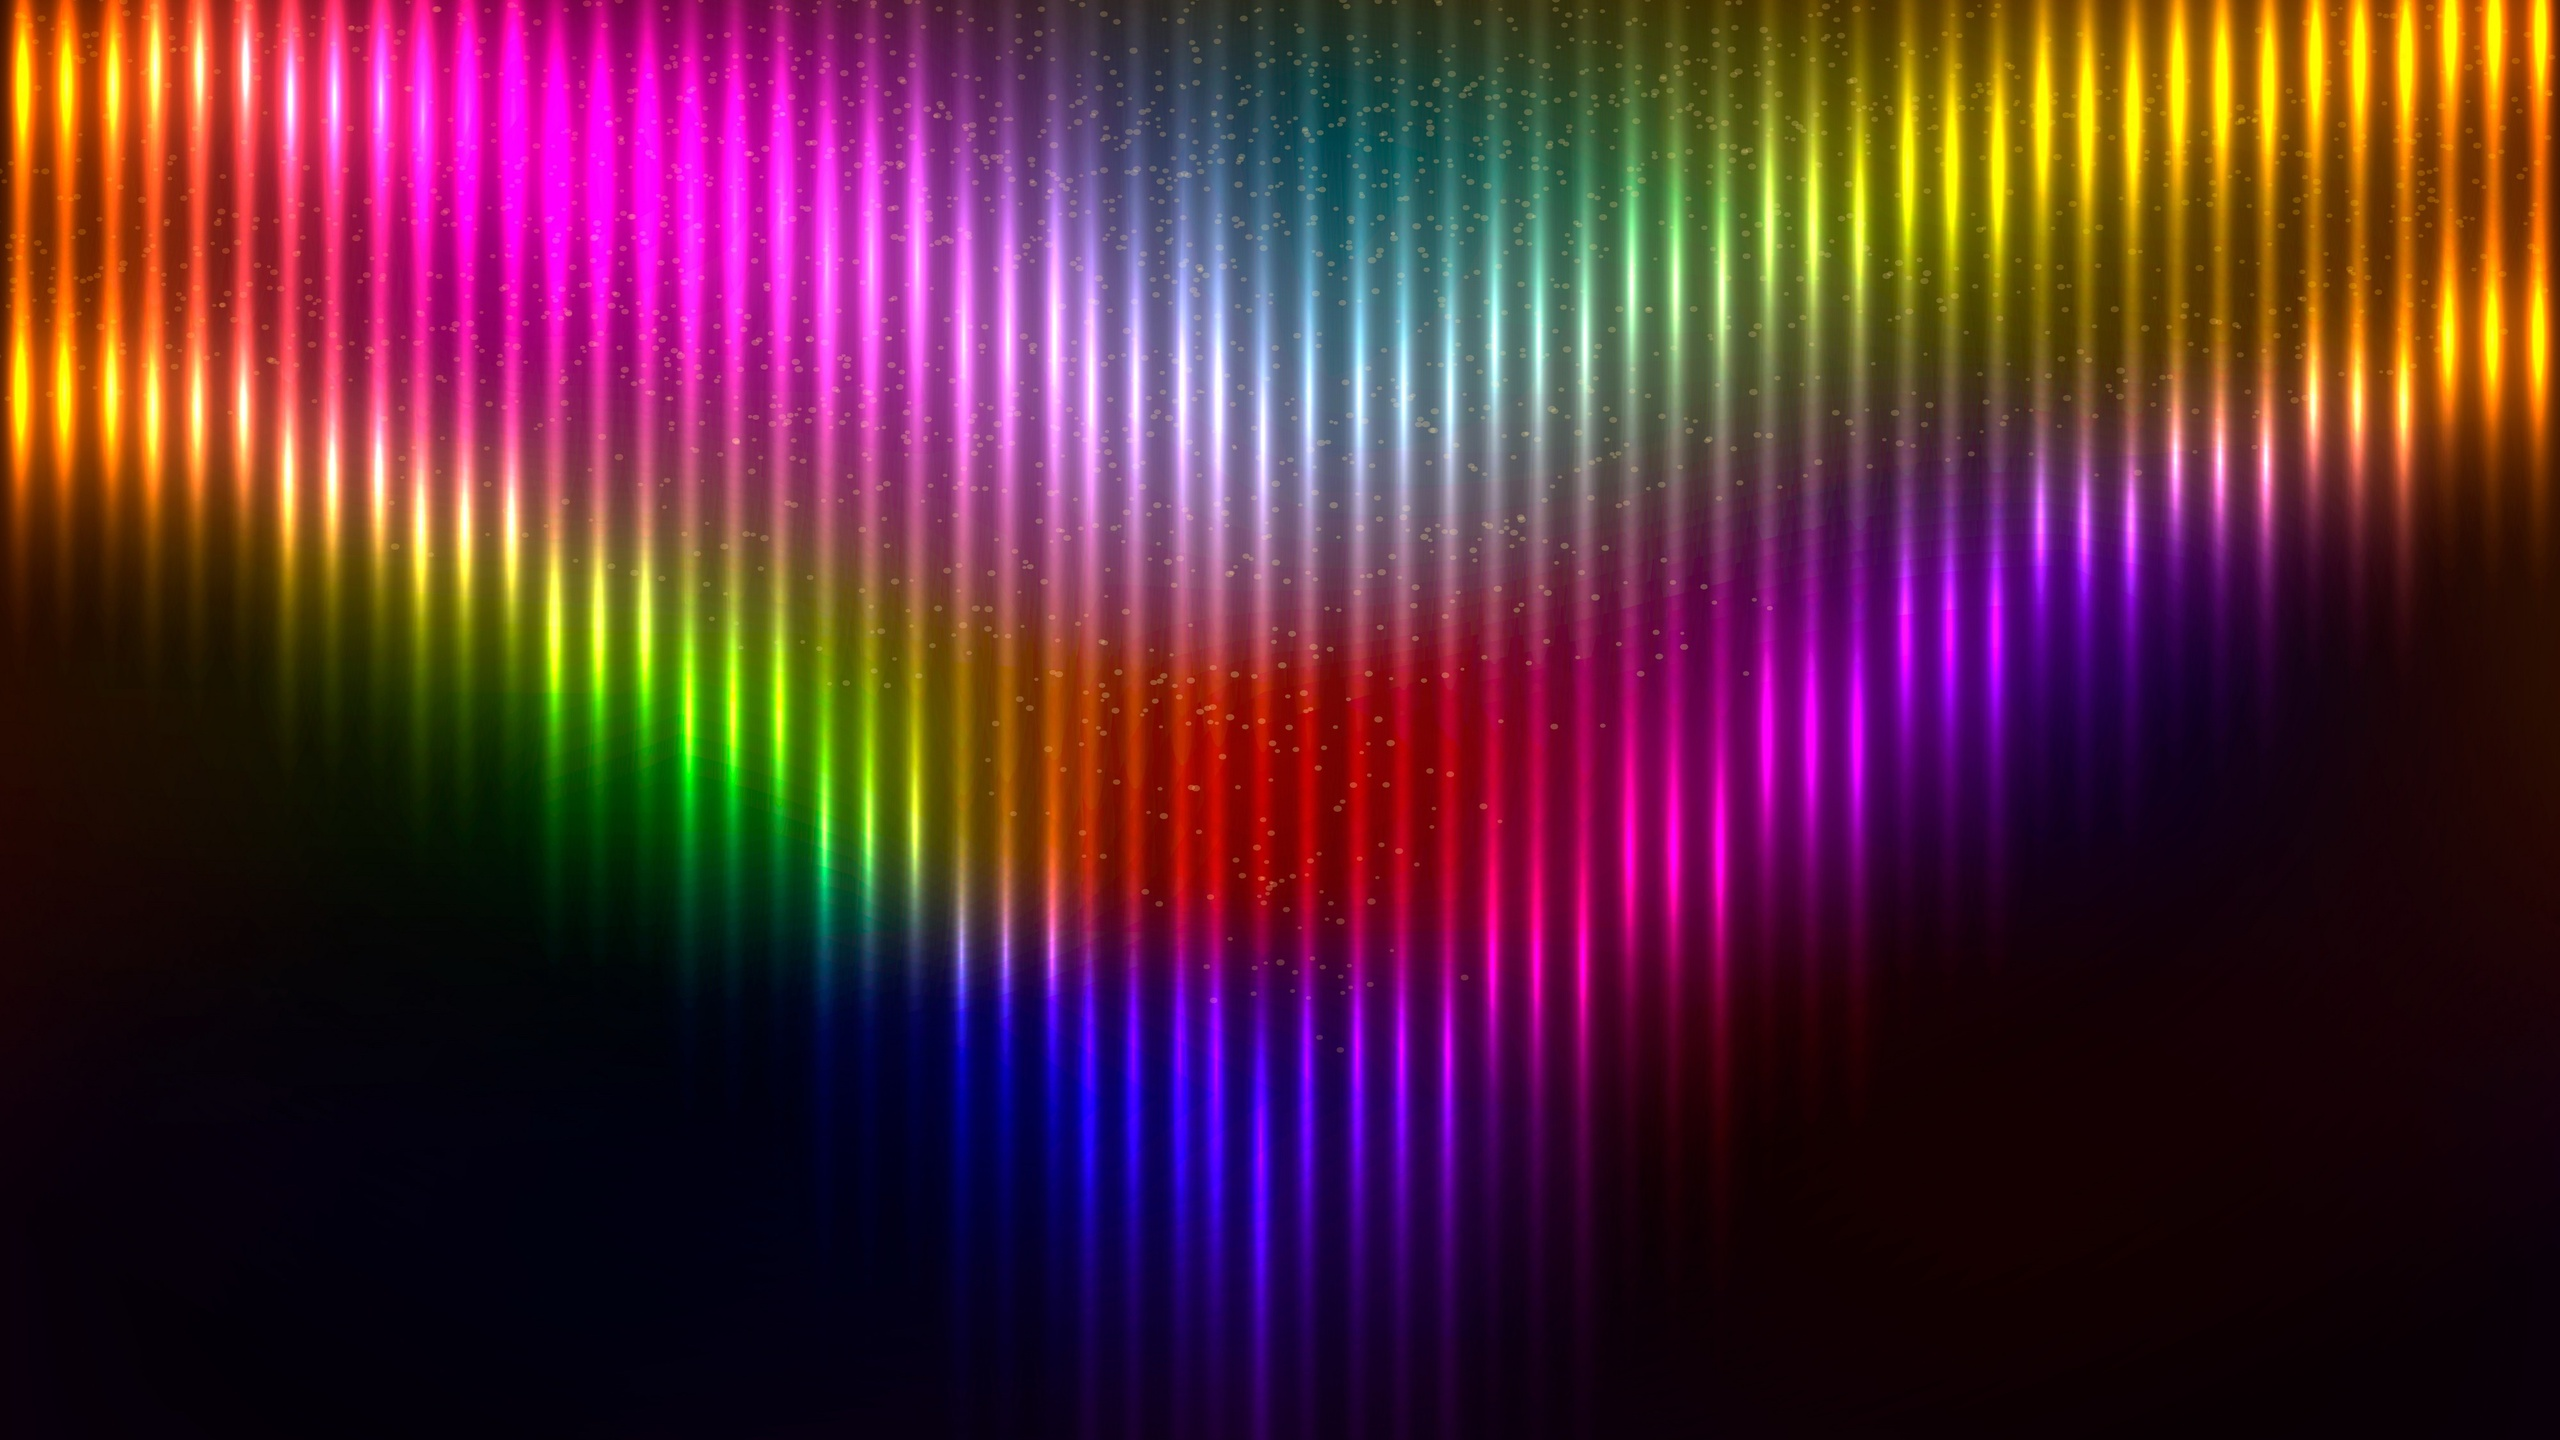 2560x1440 Artistic Colors Rainbow Background 4k 1440P